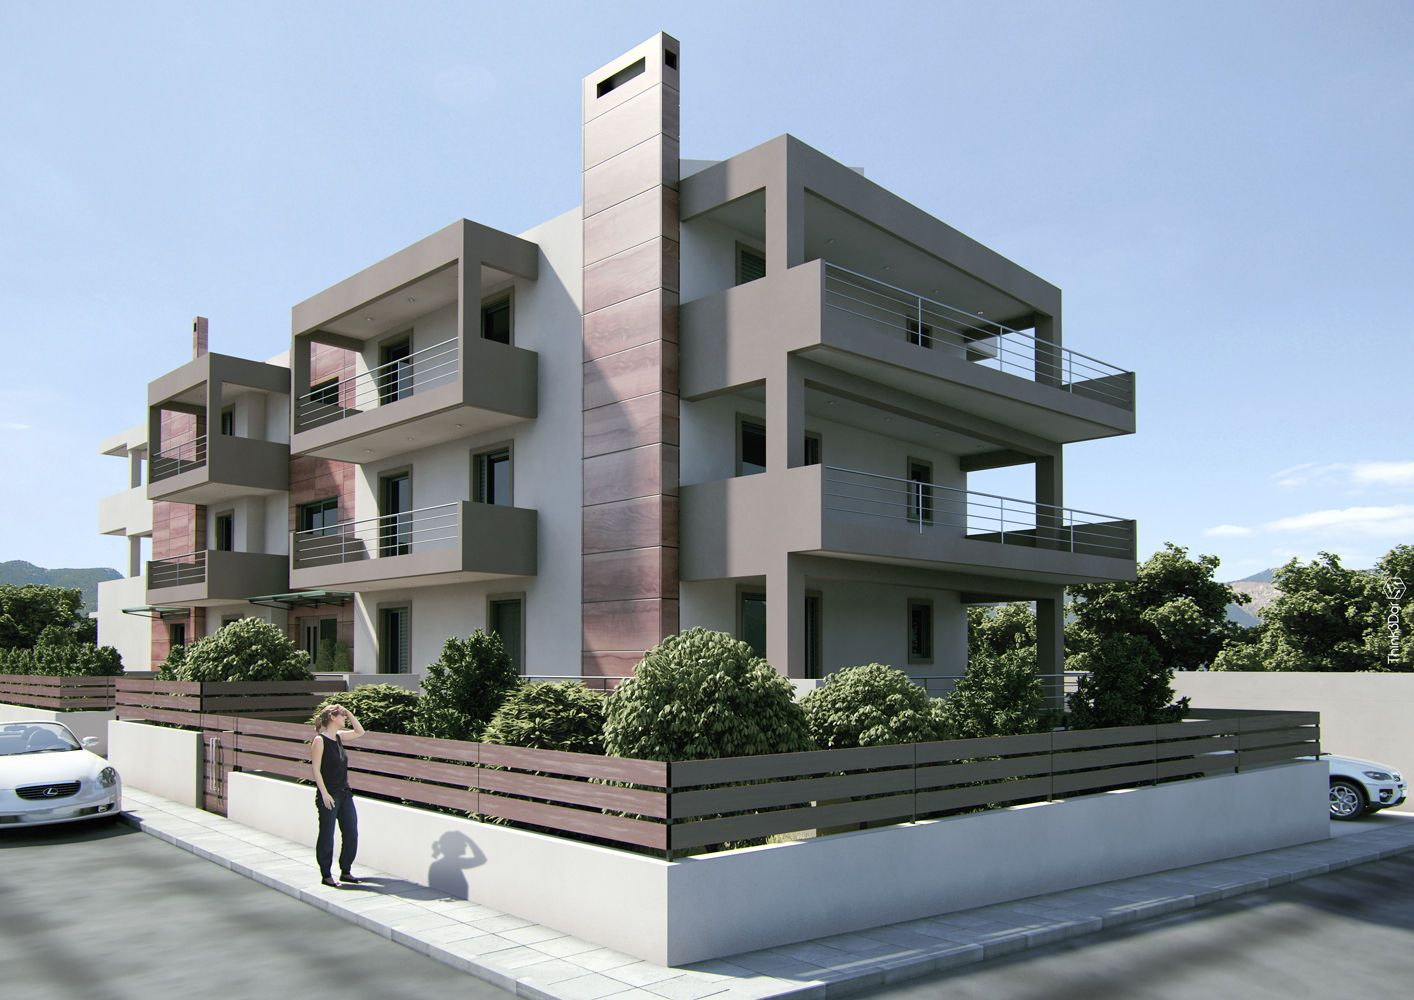 Apartment Building Design Concepts amazing design modern small apartment complex with casabase